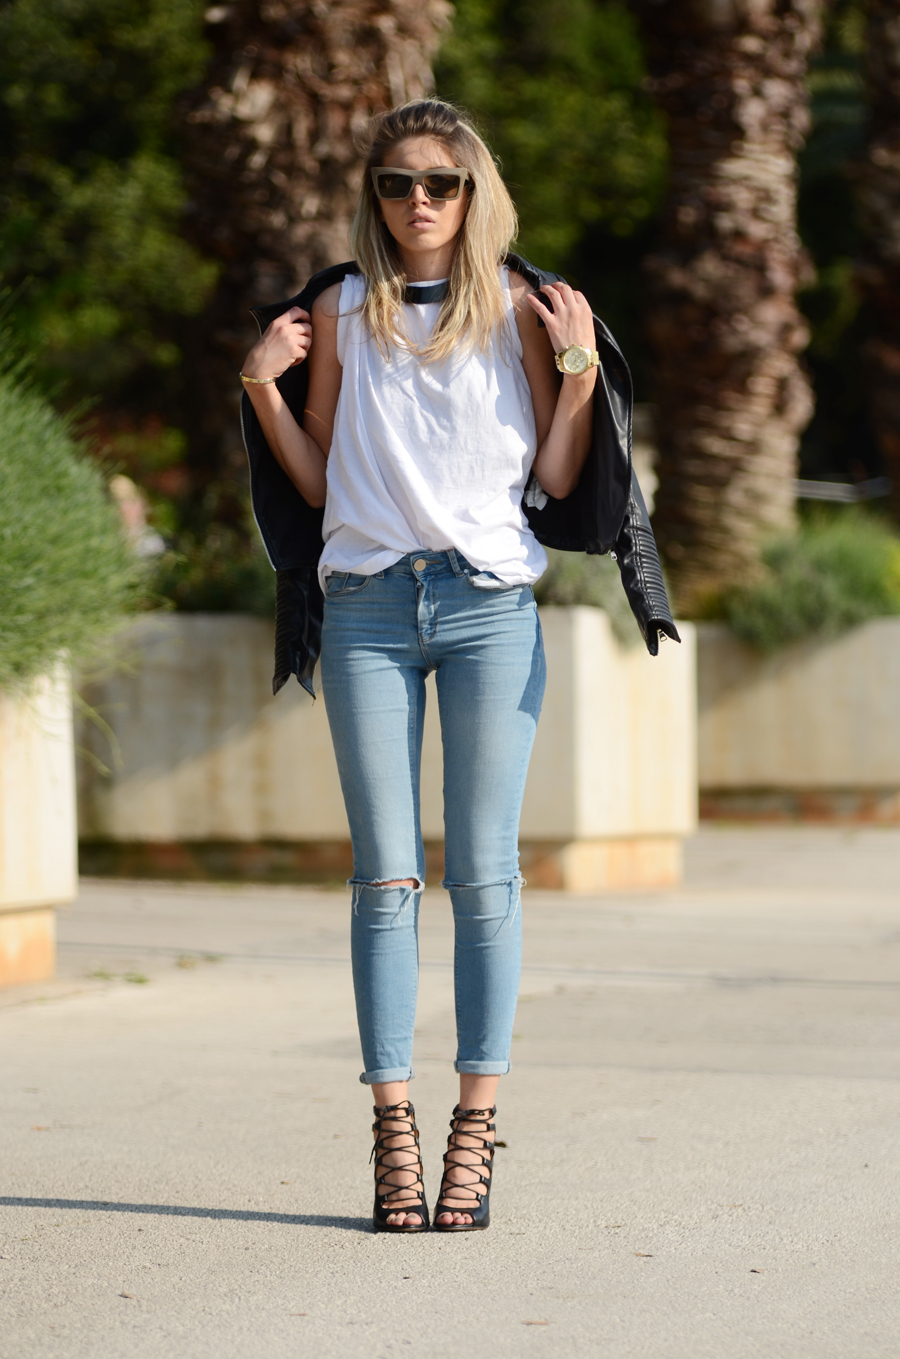 TNT Casual skinny jeans and white tee random problems walking in high heels and my tips